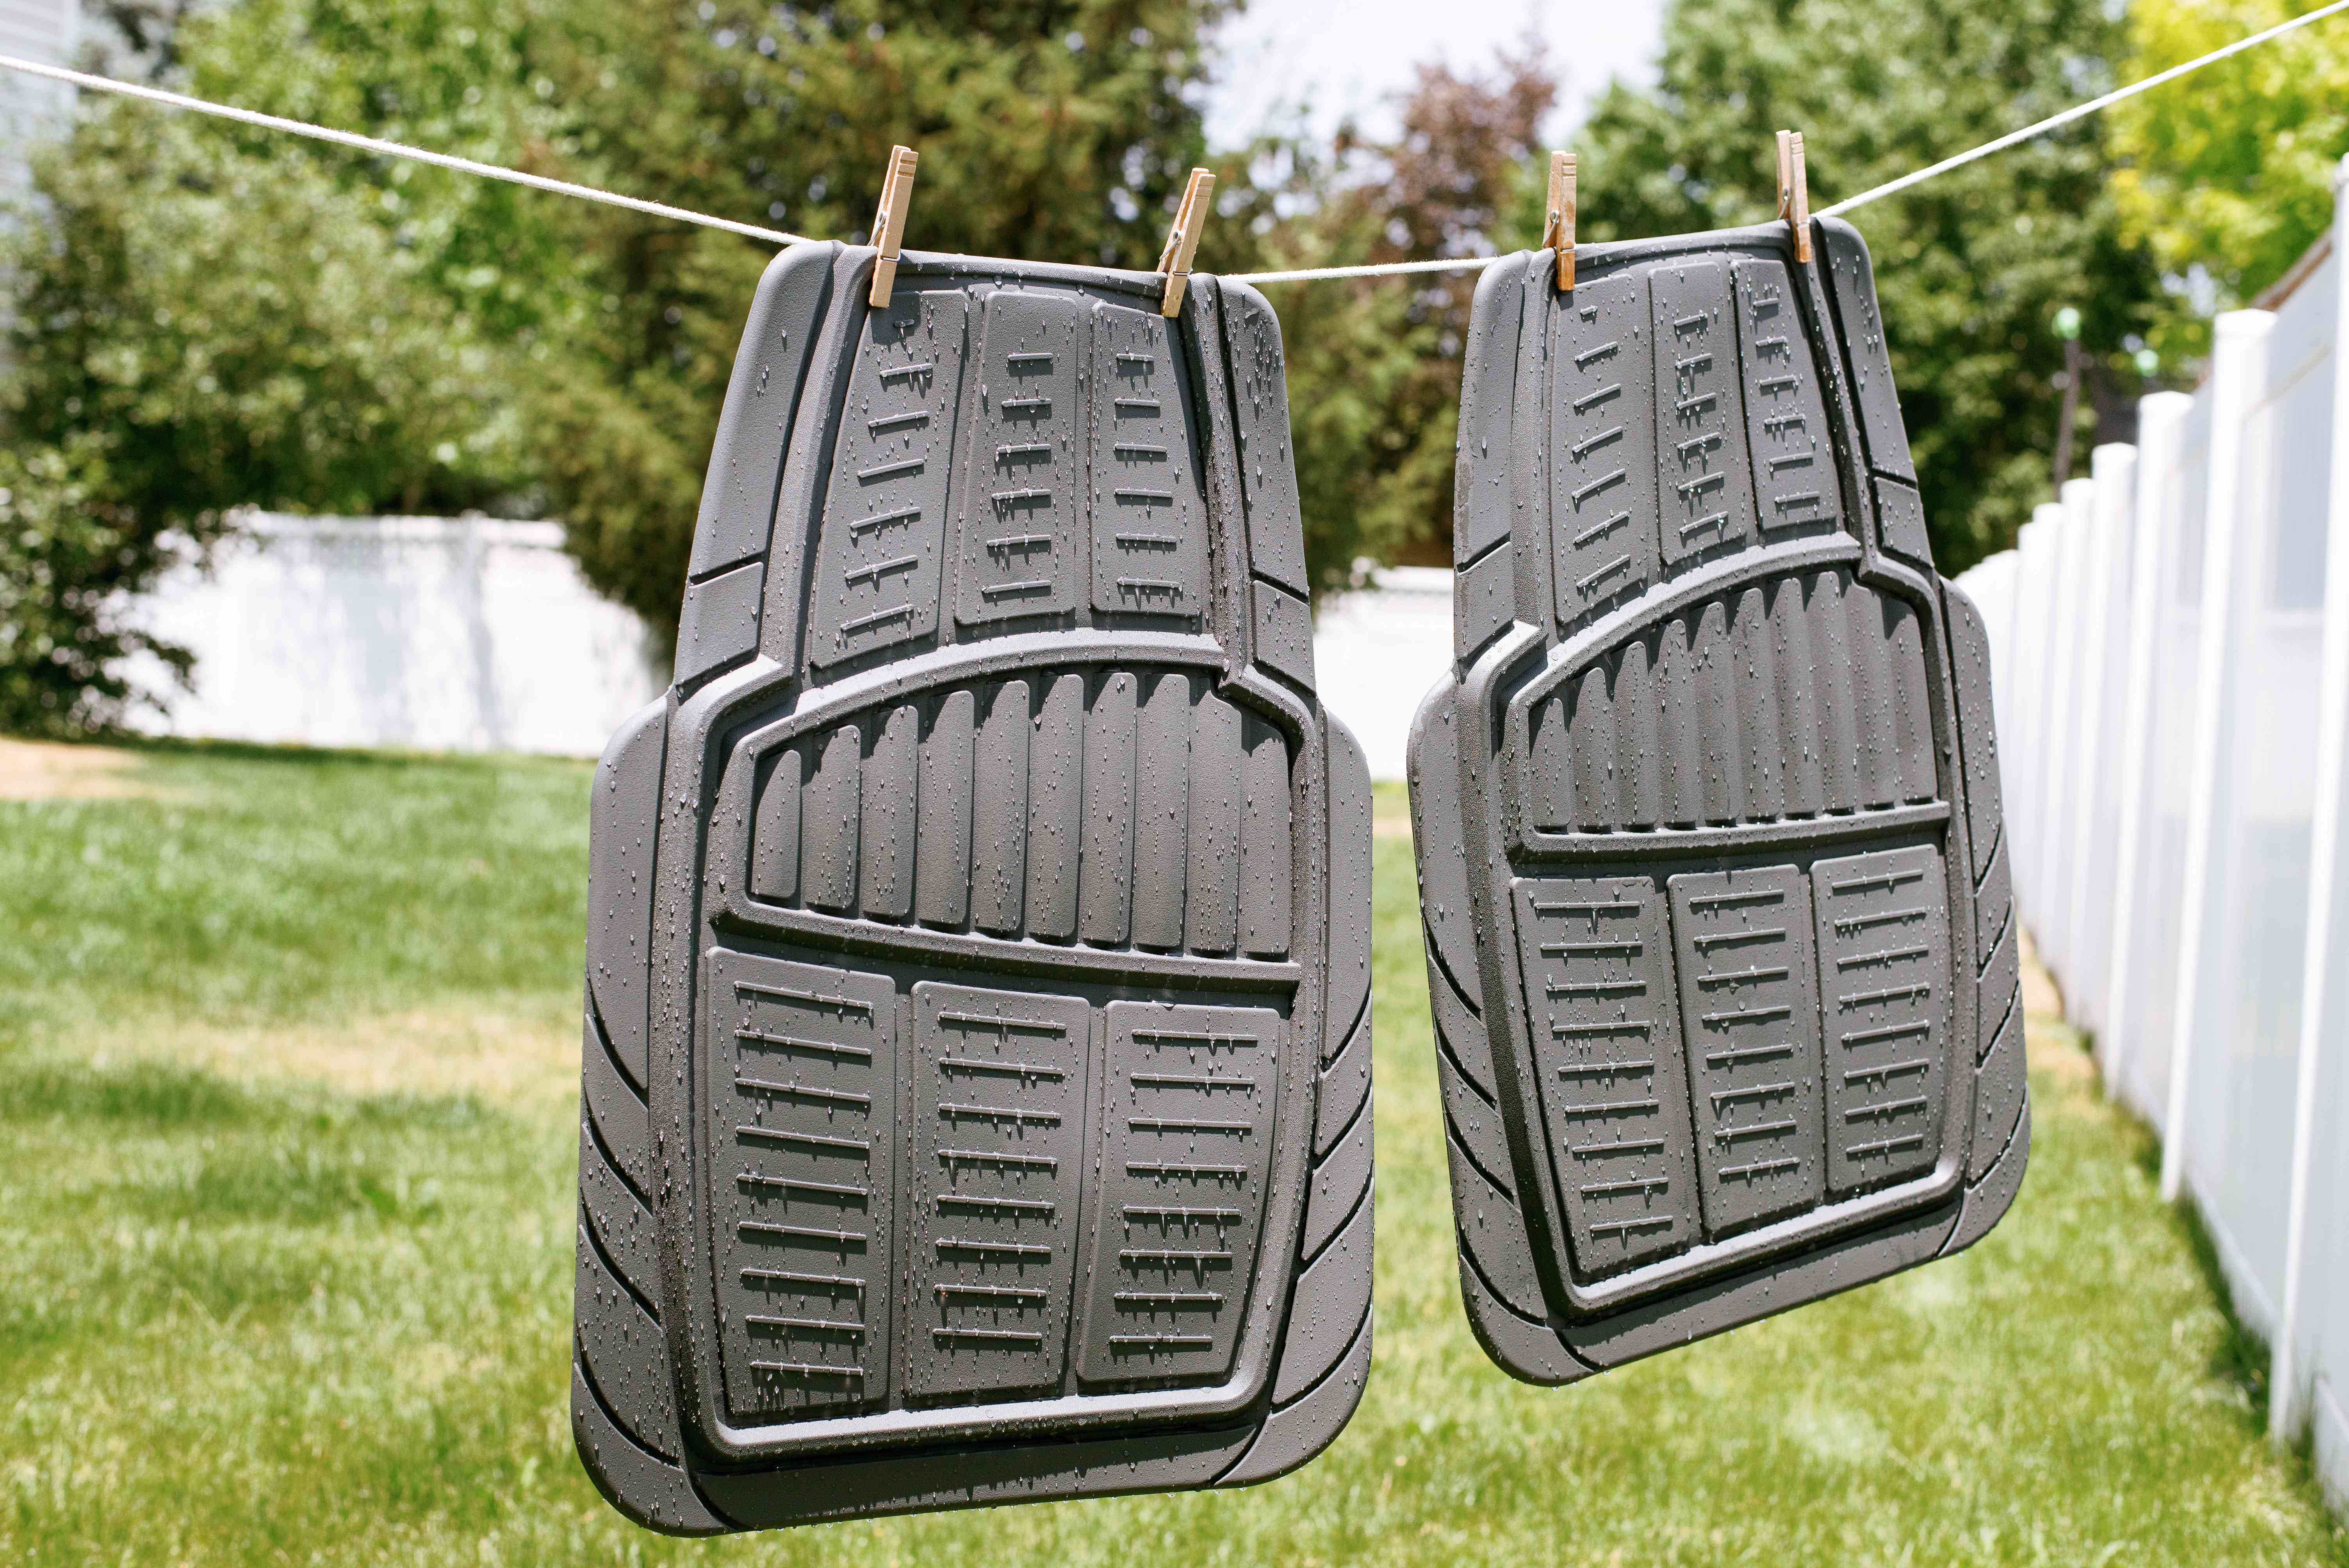 Gray rubber car mats hanging dry on clothesline